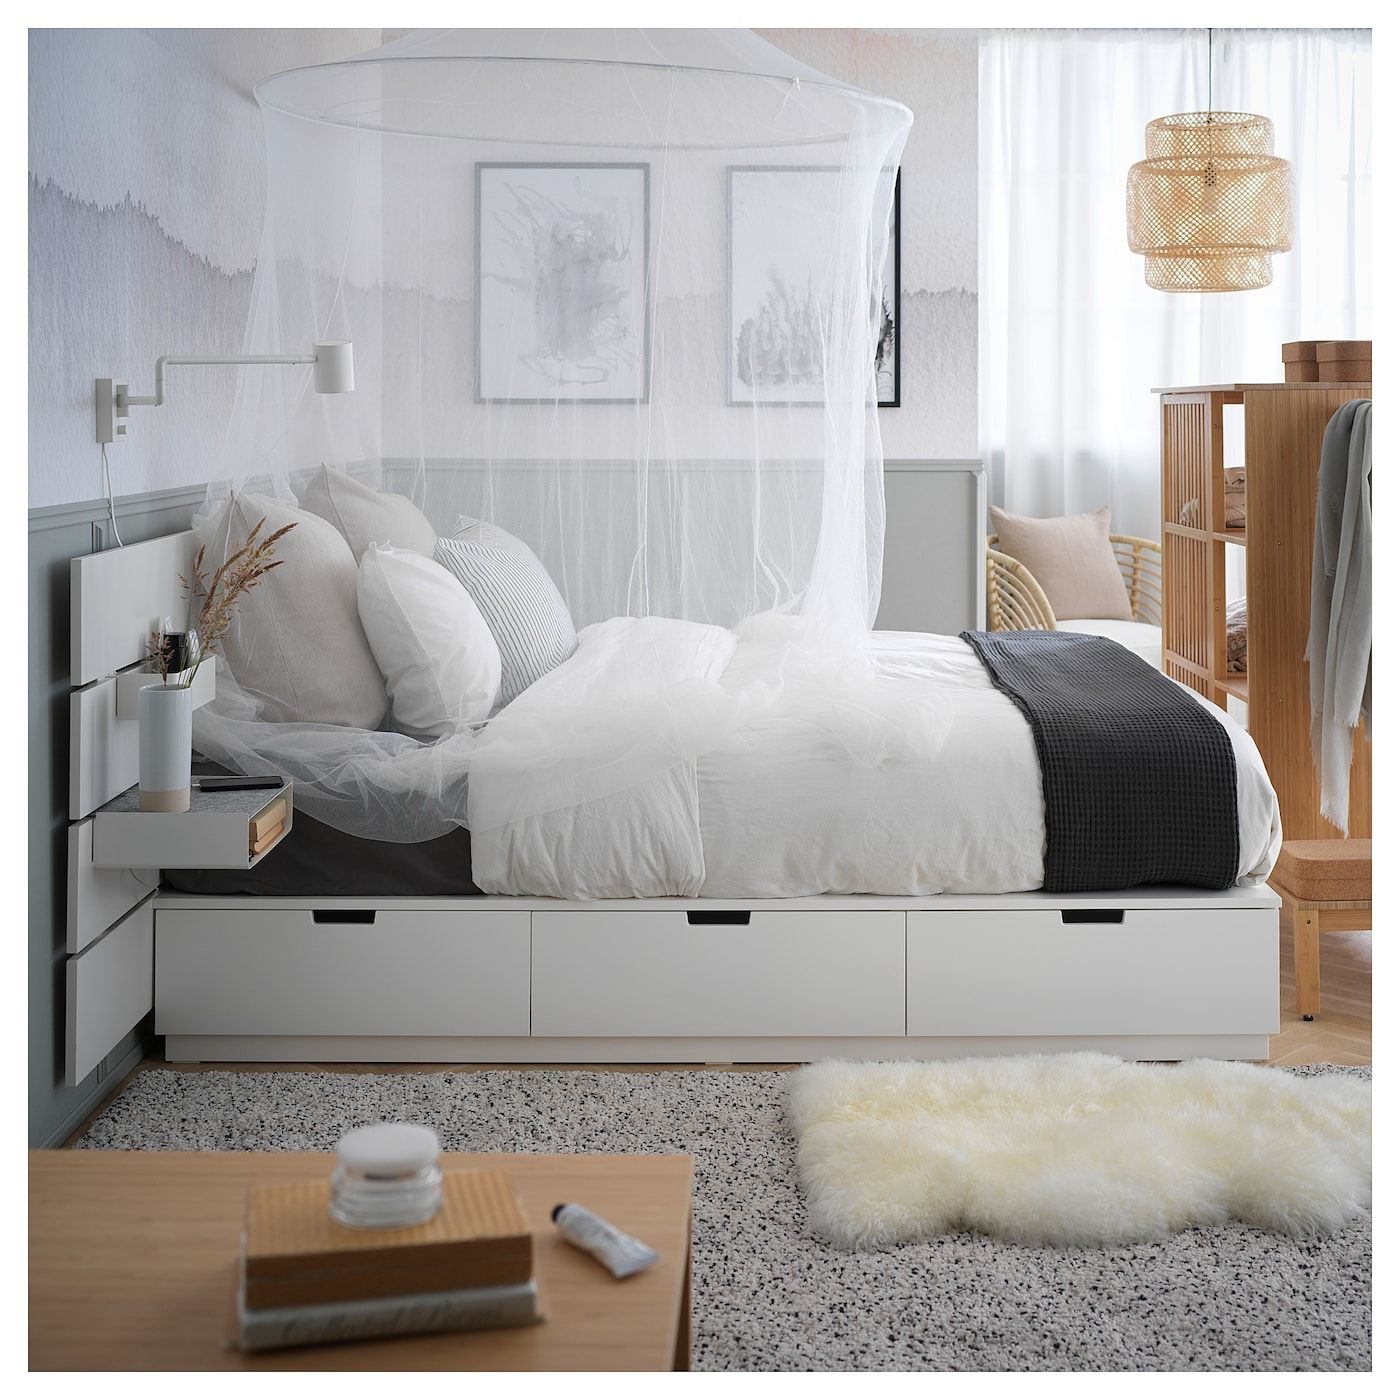 Nordli Bed With Headboard And Storage White Ikea In 2020 Bed Frame With Storage Headboards For Beds Ikea Storage Bed